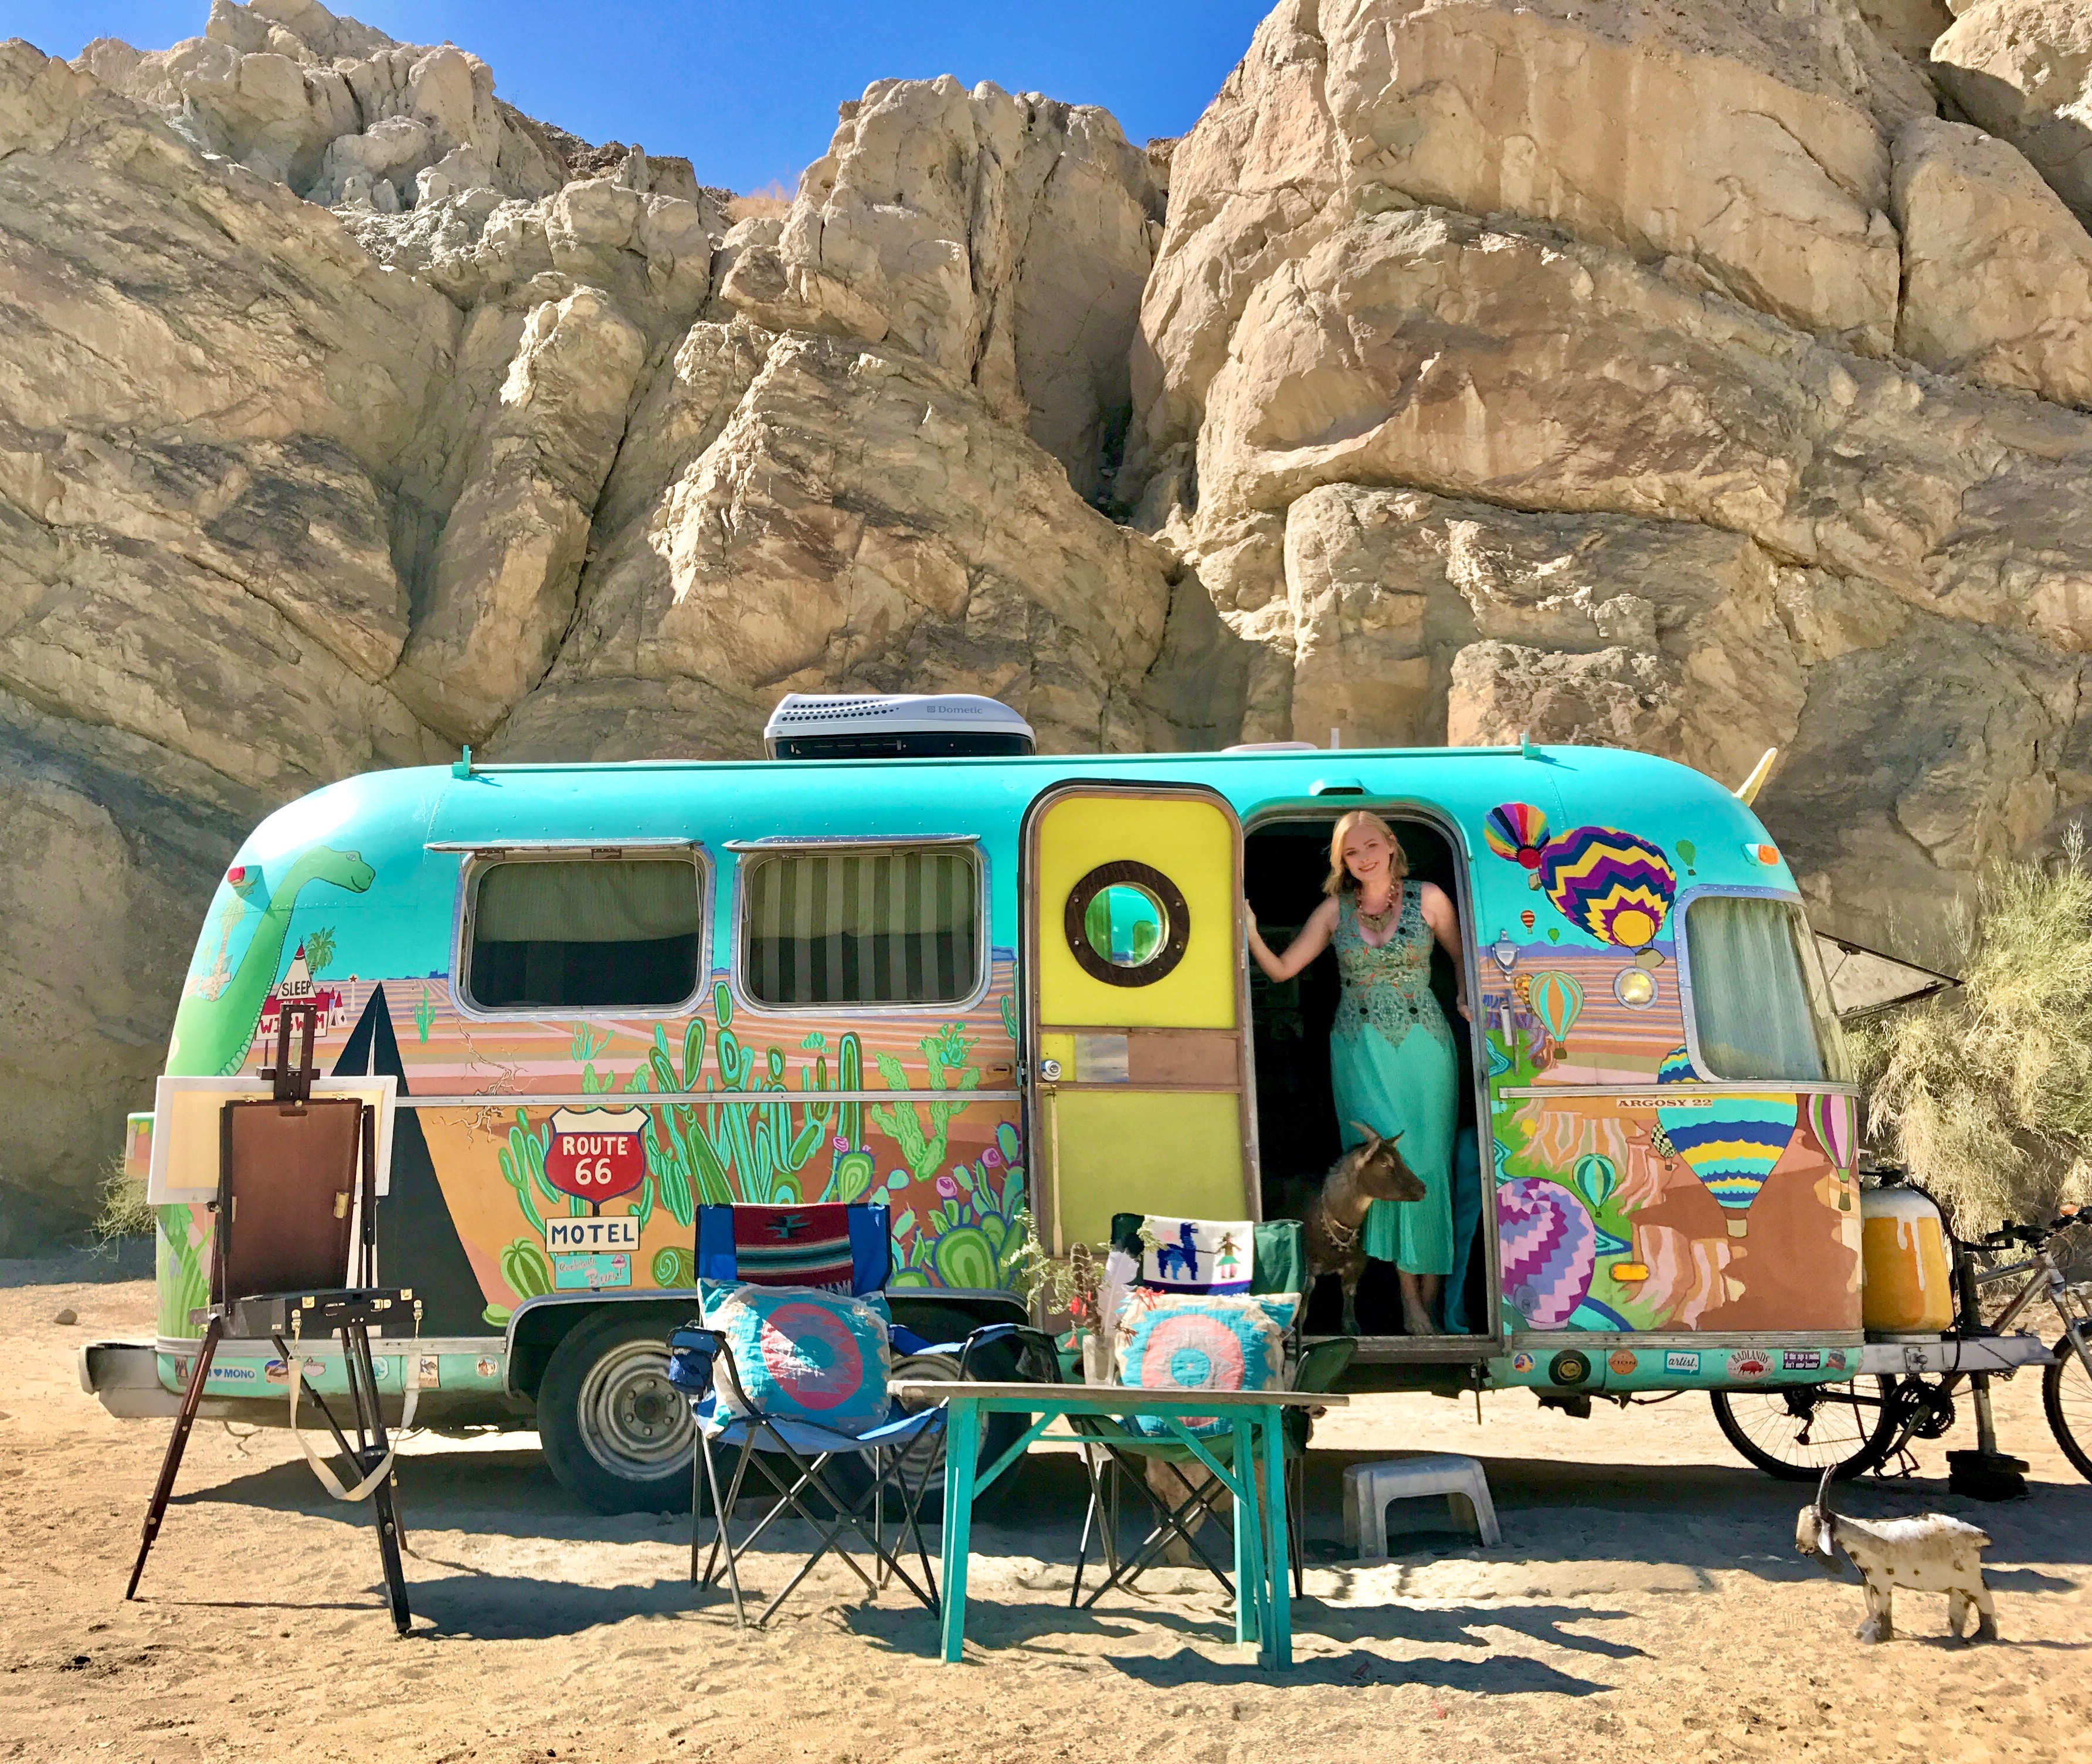 Colorful Airstream with woman standing in door.